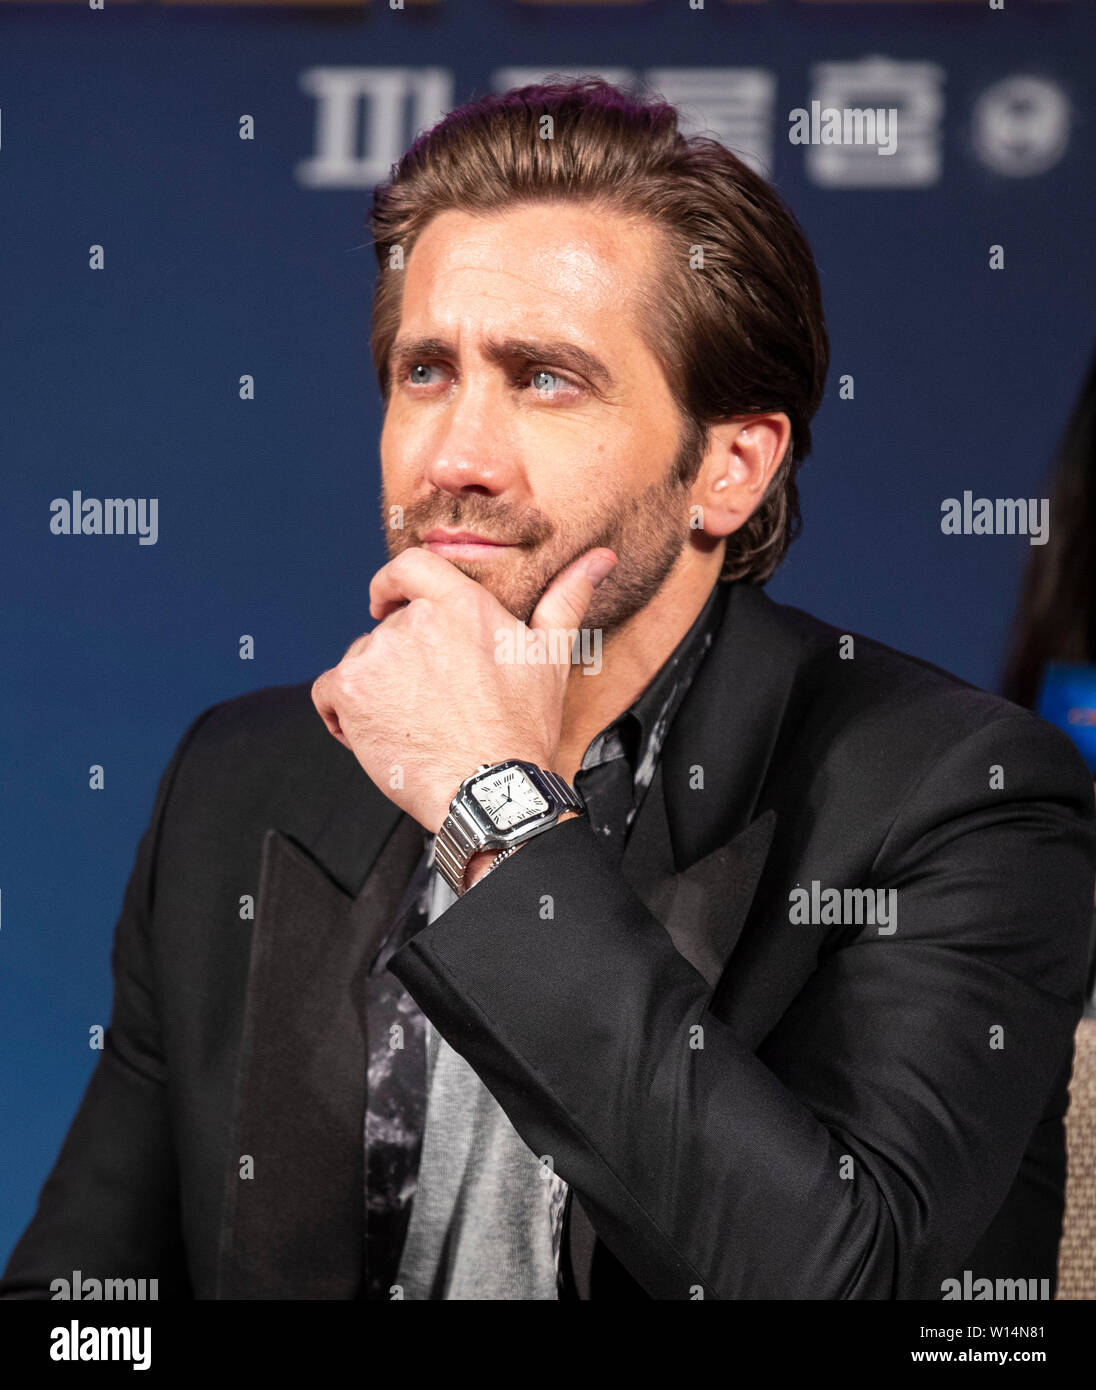 """Seoul, South Korea. 30th June, 2019. Actor Jake Gyllenhaal attends a press conference of the film """"Spider-Man: Far From Home"""" in Seoul, South Korea, June 30, 2019. The movie will be released in South Korea on July 2. Credit: Lee Sang-ho/Xinhua/Alamy Live News Stock Photo"""